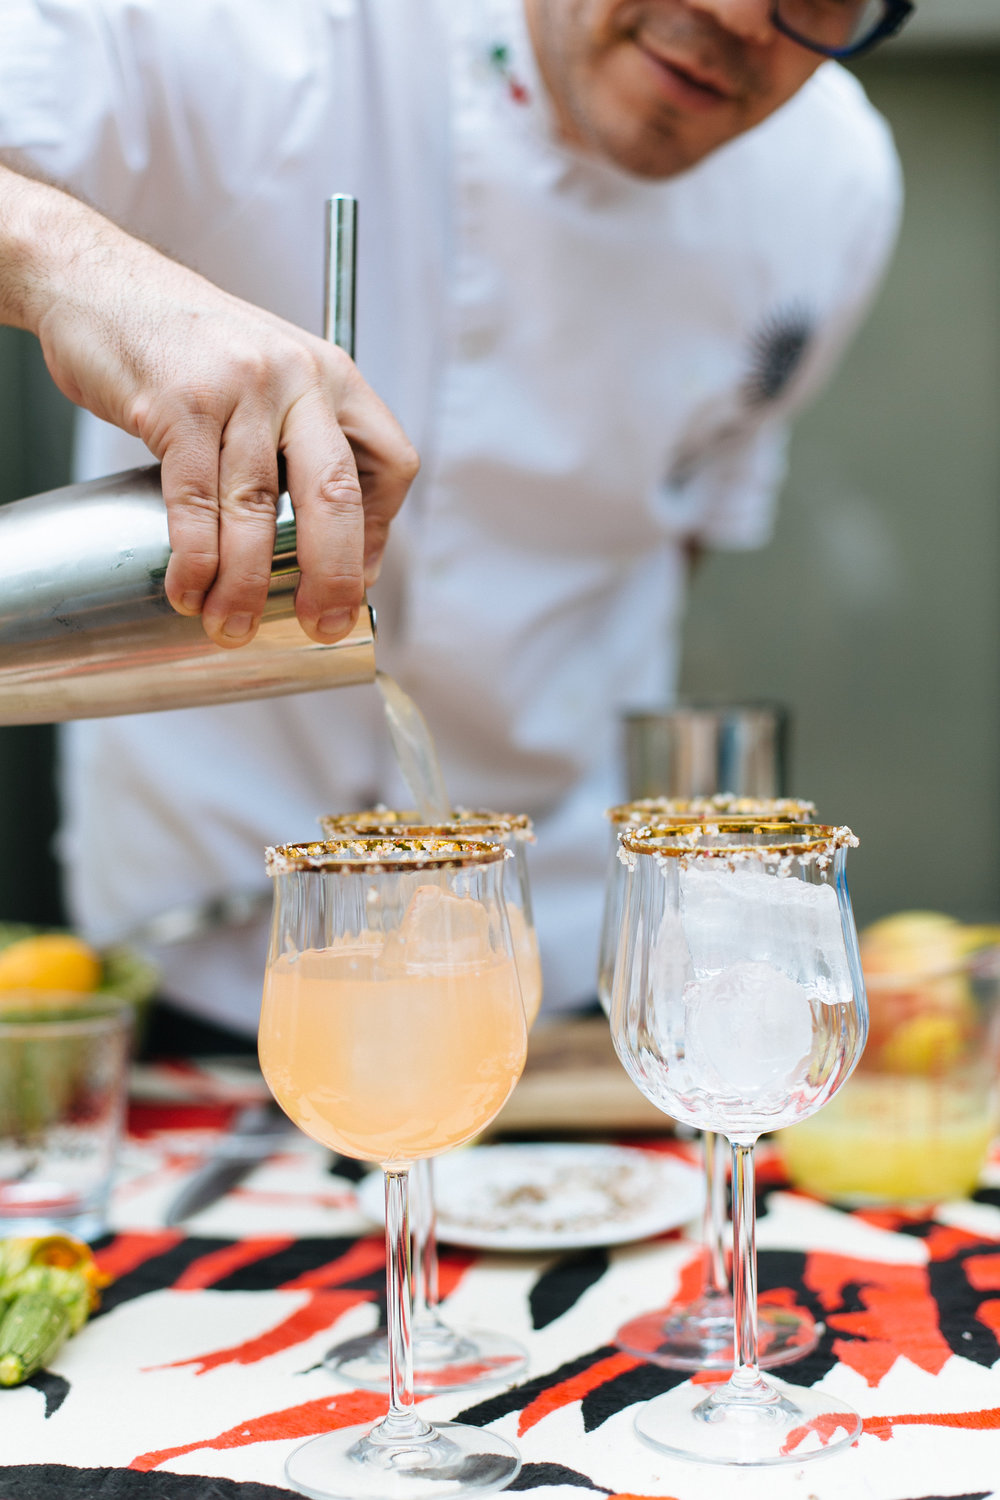 man serving cocktails with Altos tequila